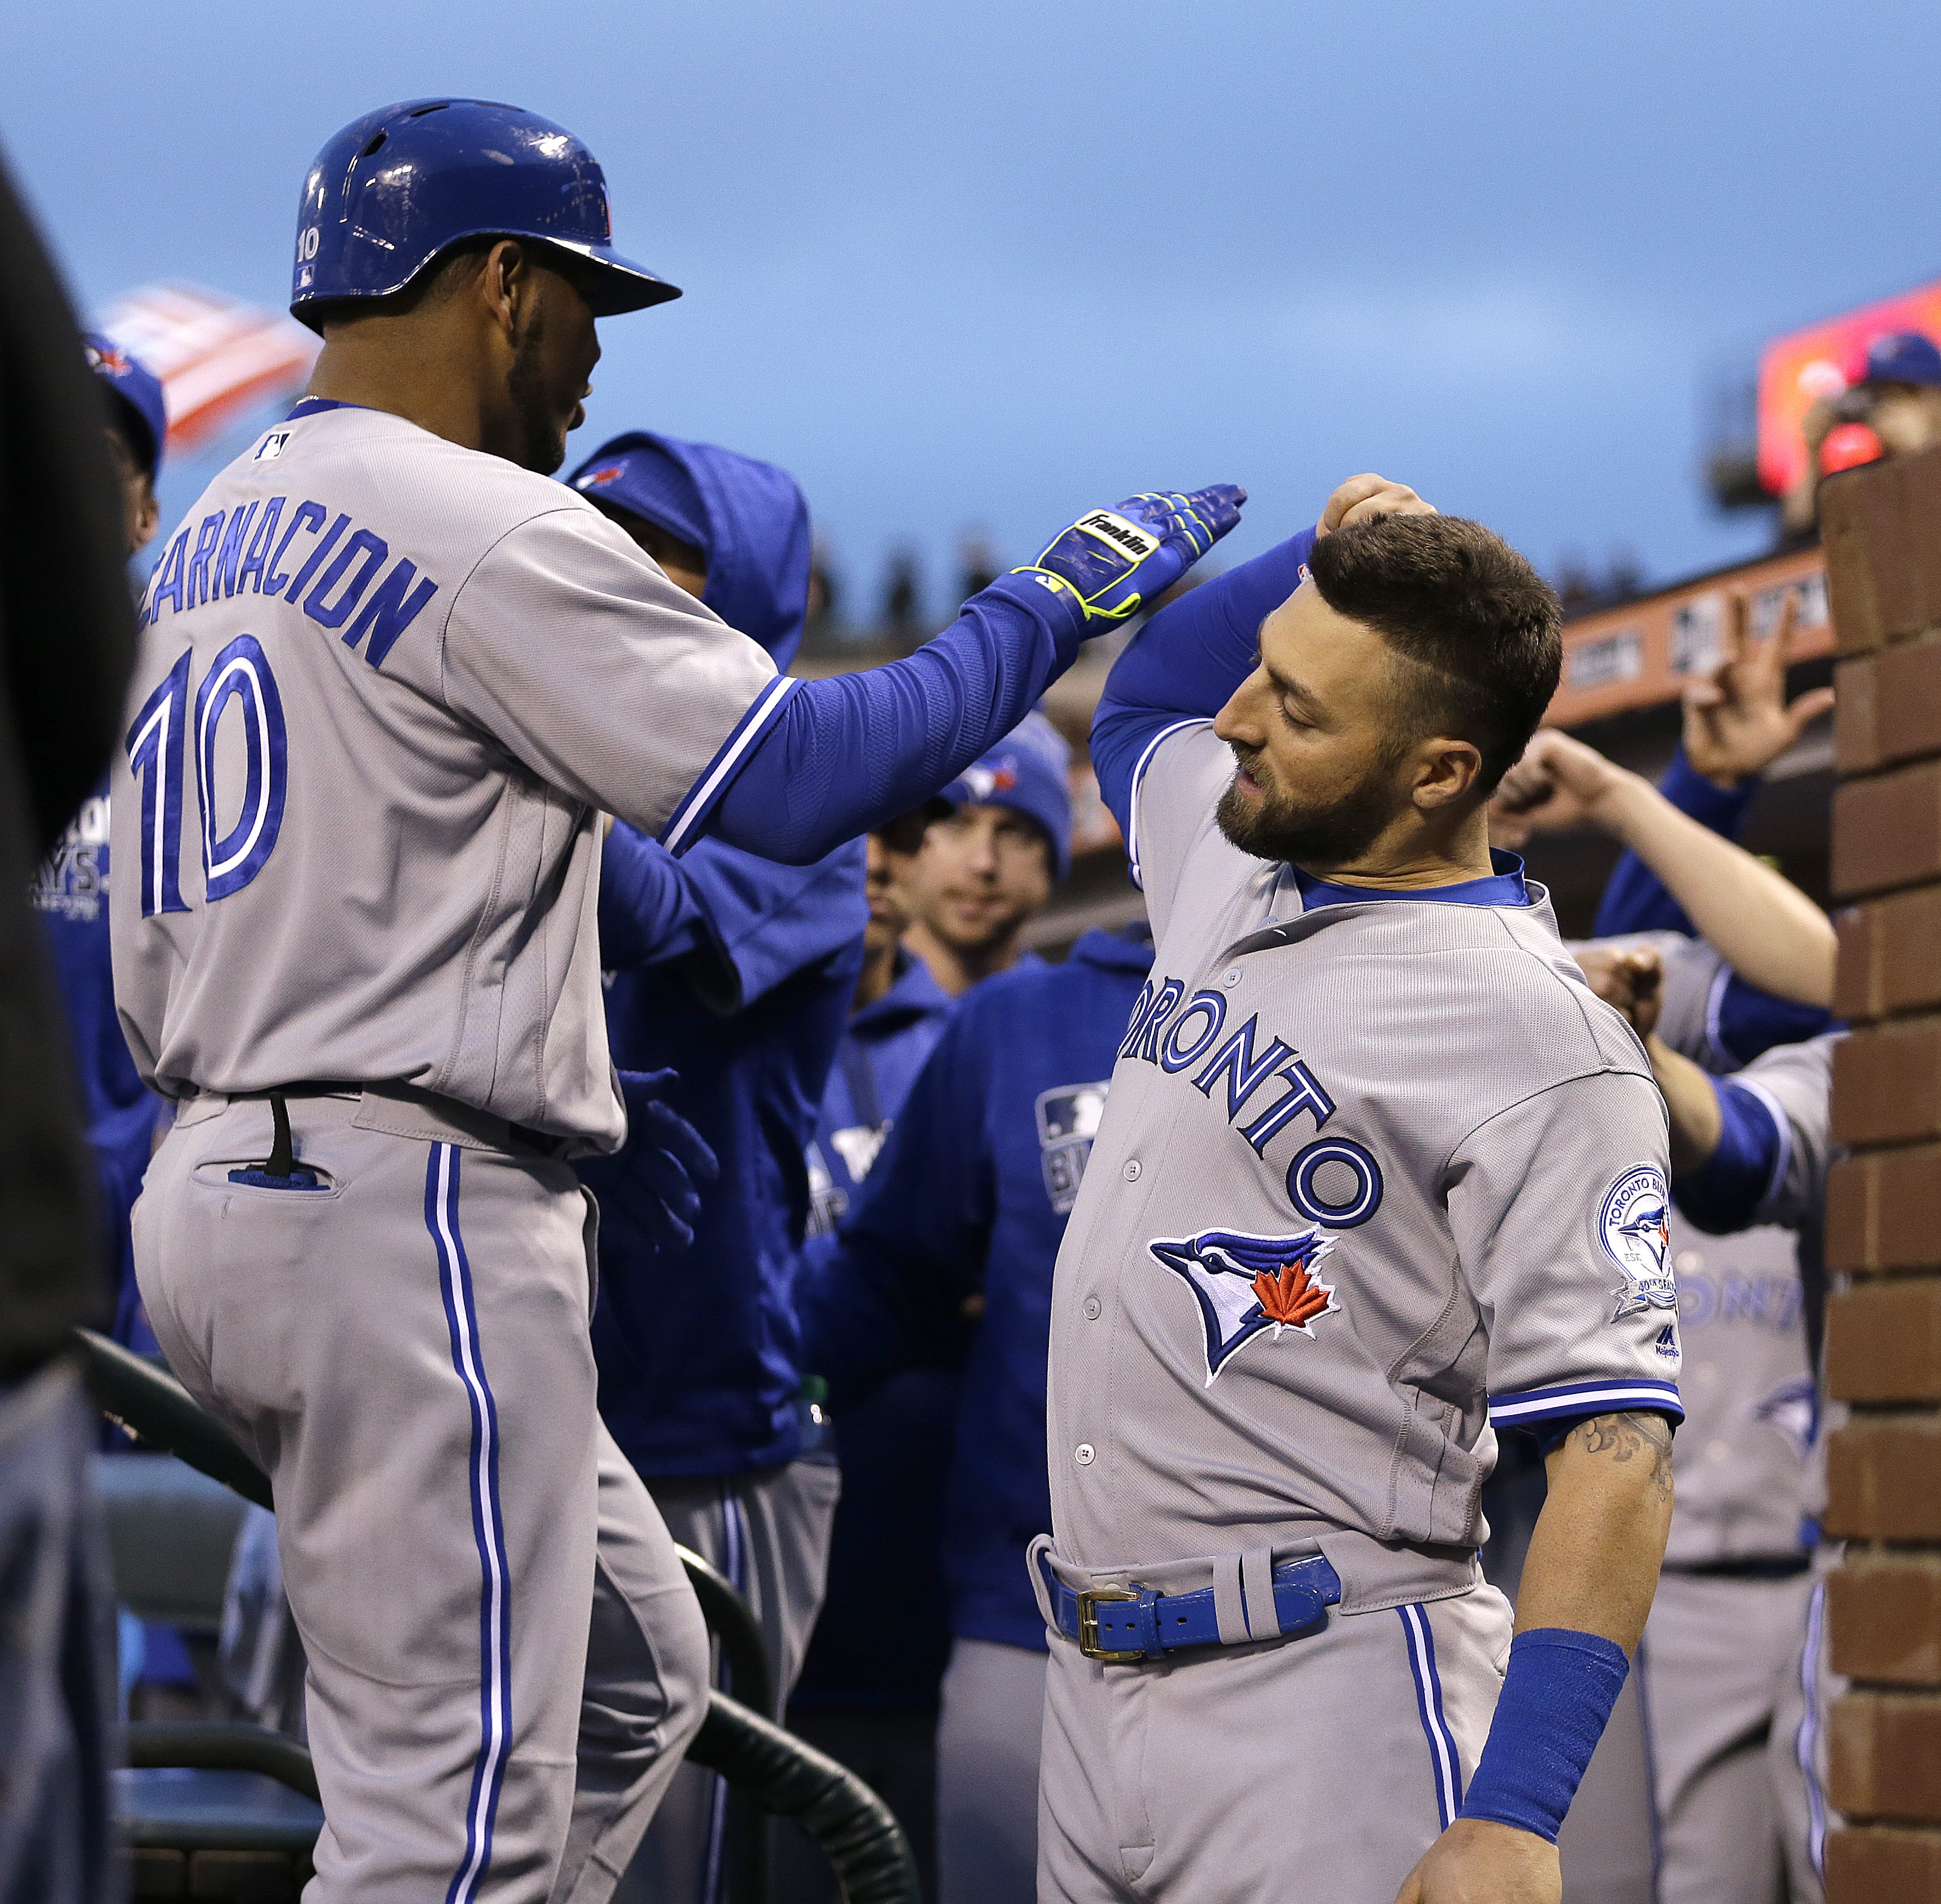 Toronto Blue Jays' Edwin Encarnacion, left, celebrates with Kevin Pillar (11) after hitting a two-run home run off San Francisco Giants' Jake Peavy in the third inning of a baseball game Monday, May 9, 2016, in San Francisco. (AP Photo/Ben Margot)